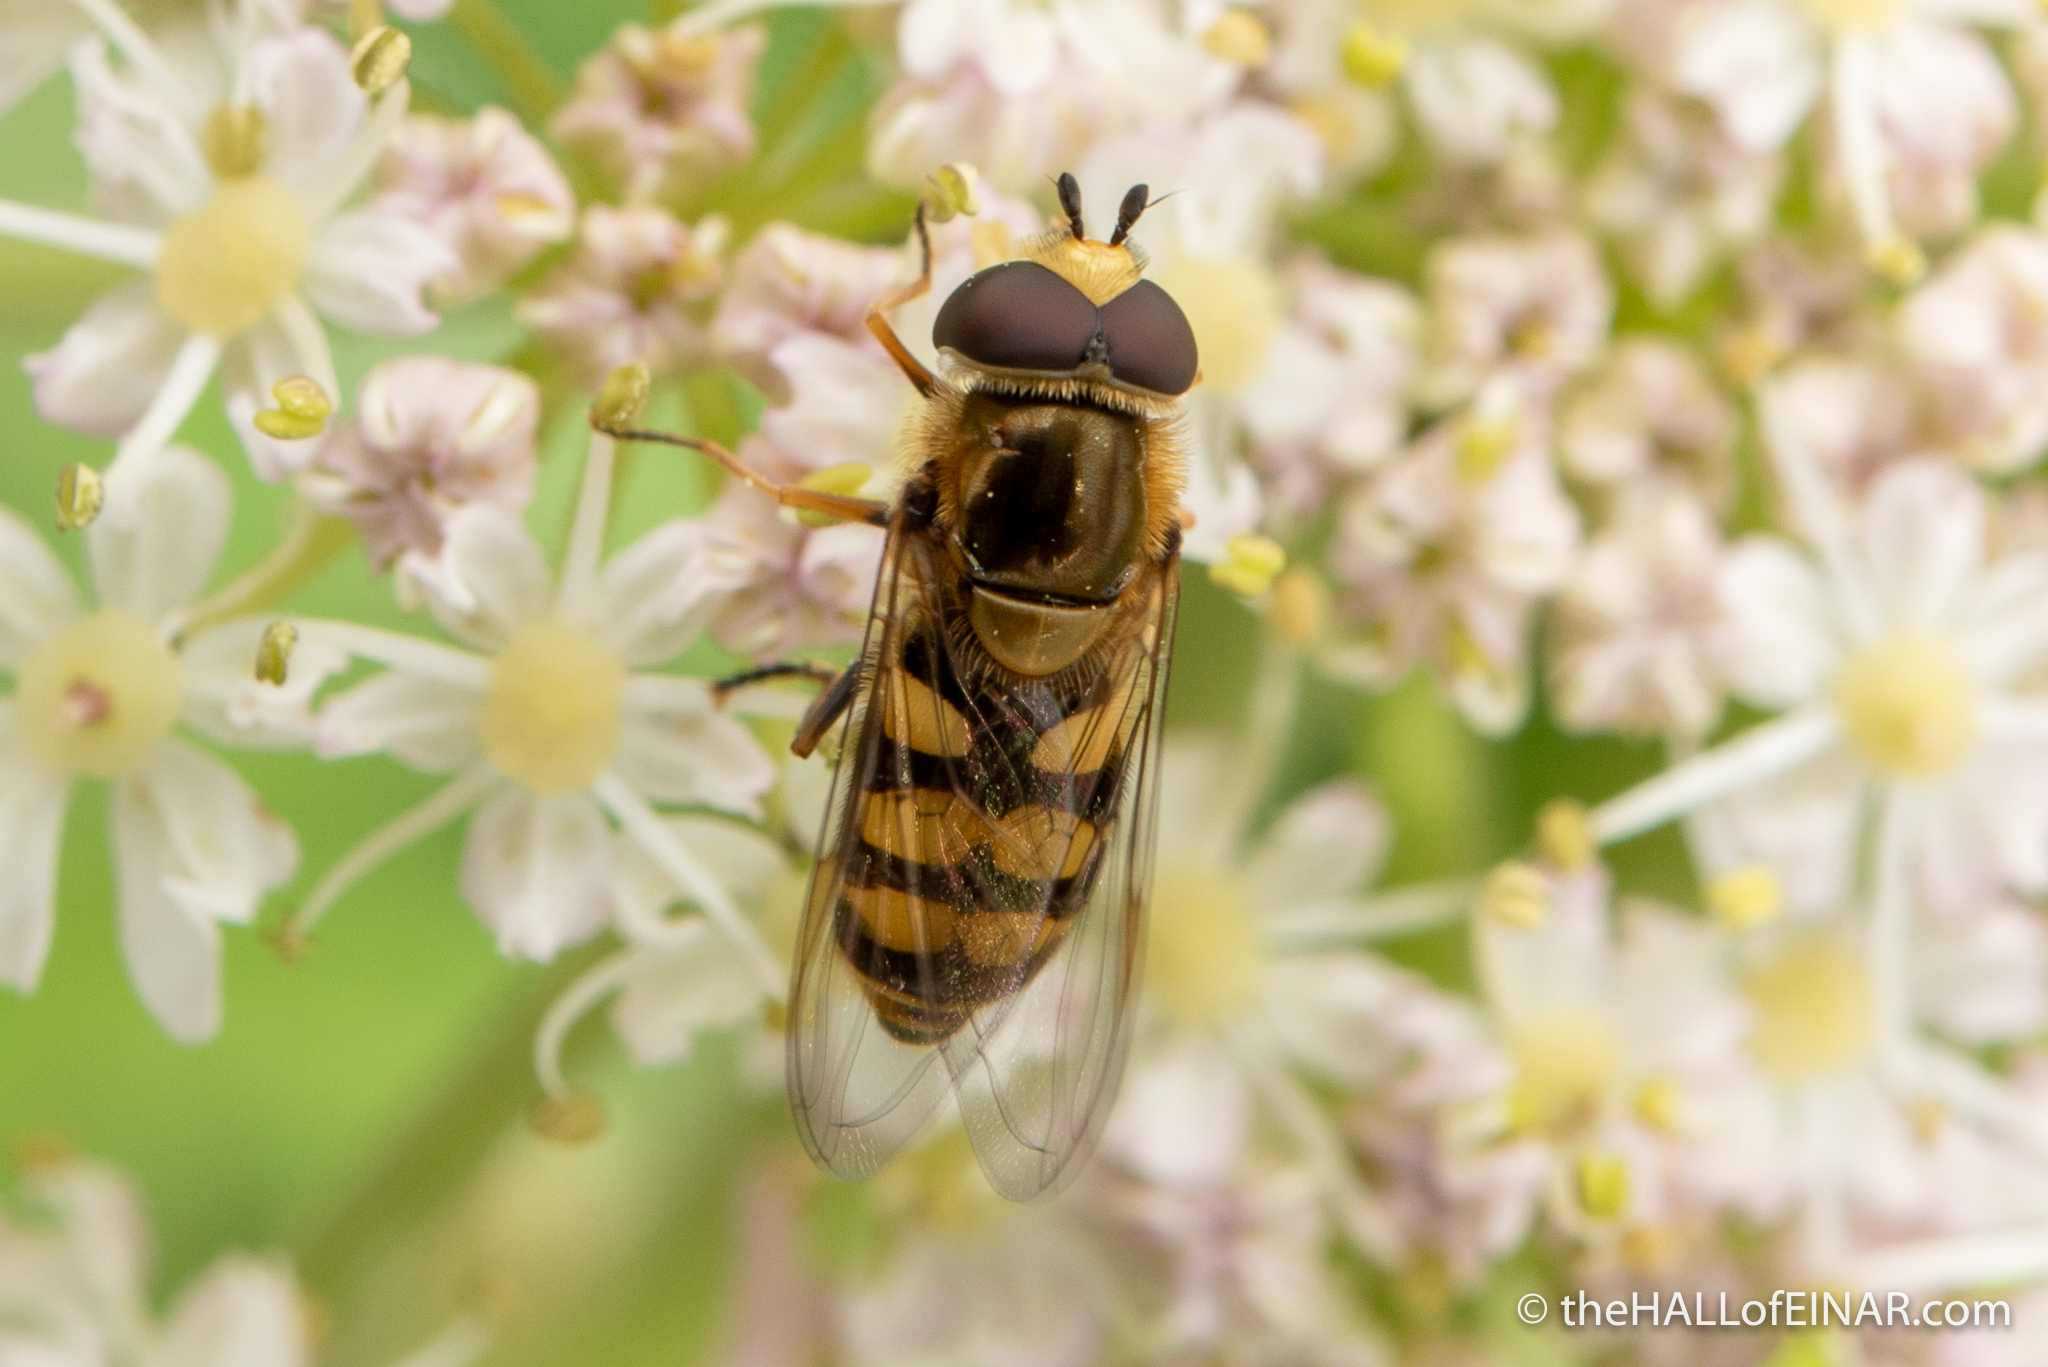 Eupeodes corollae - Hoverfly - photograph (c) David Bailey (not the)